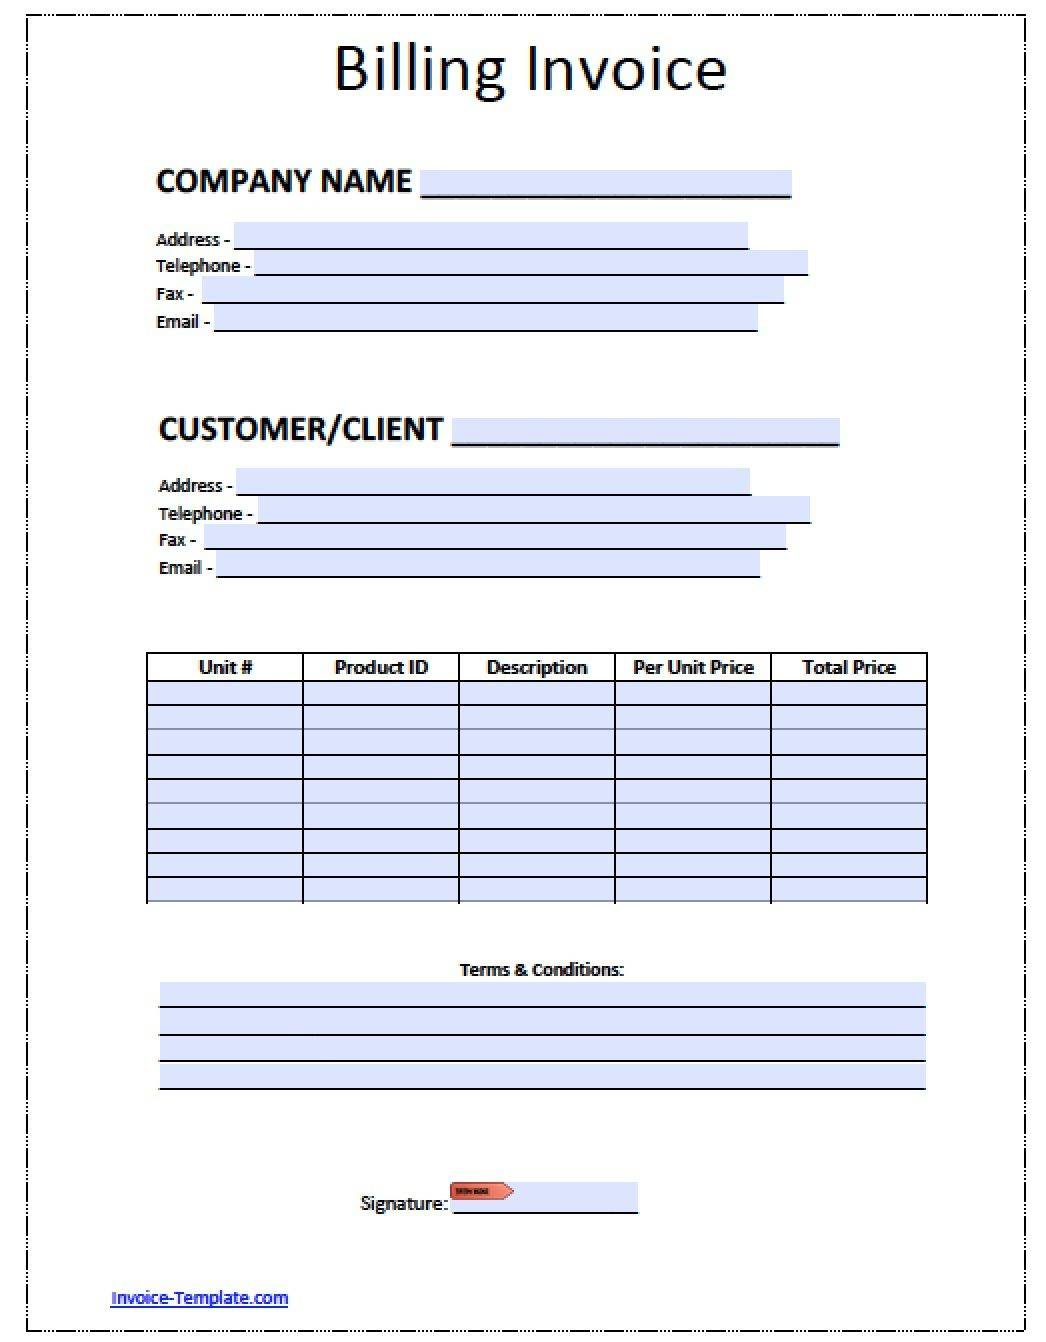 Printable Billing Invoice Templates